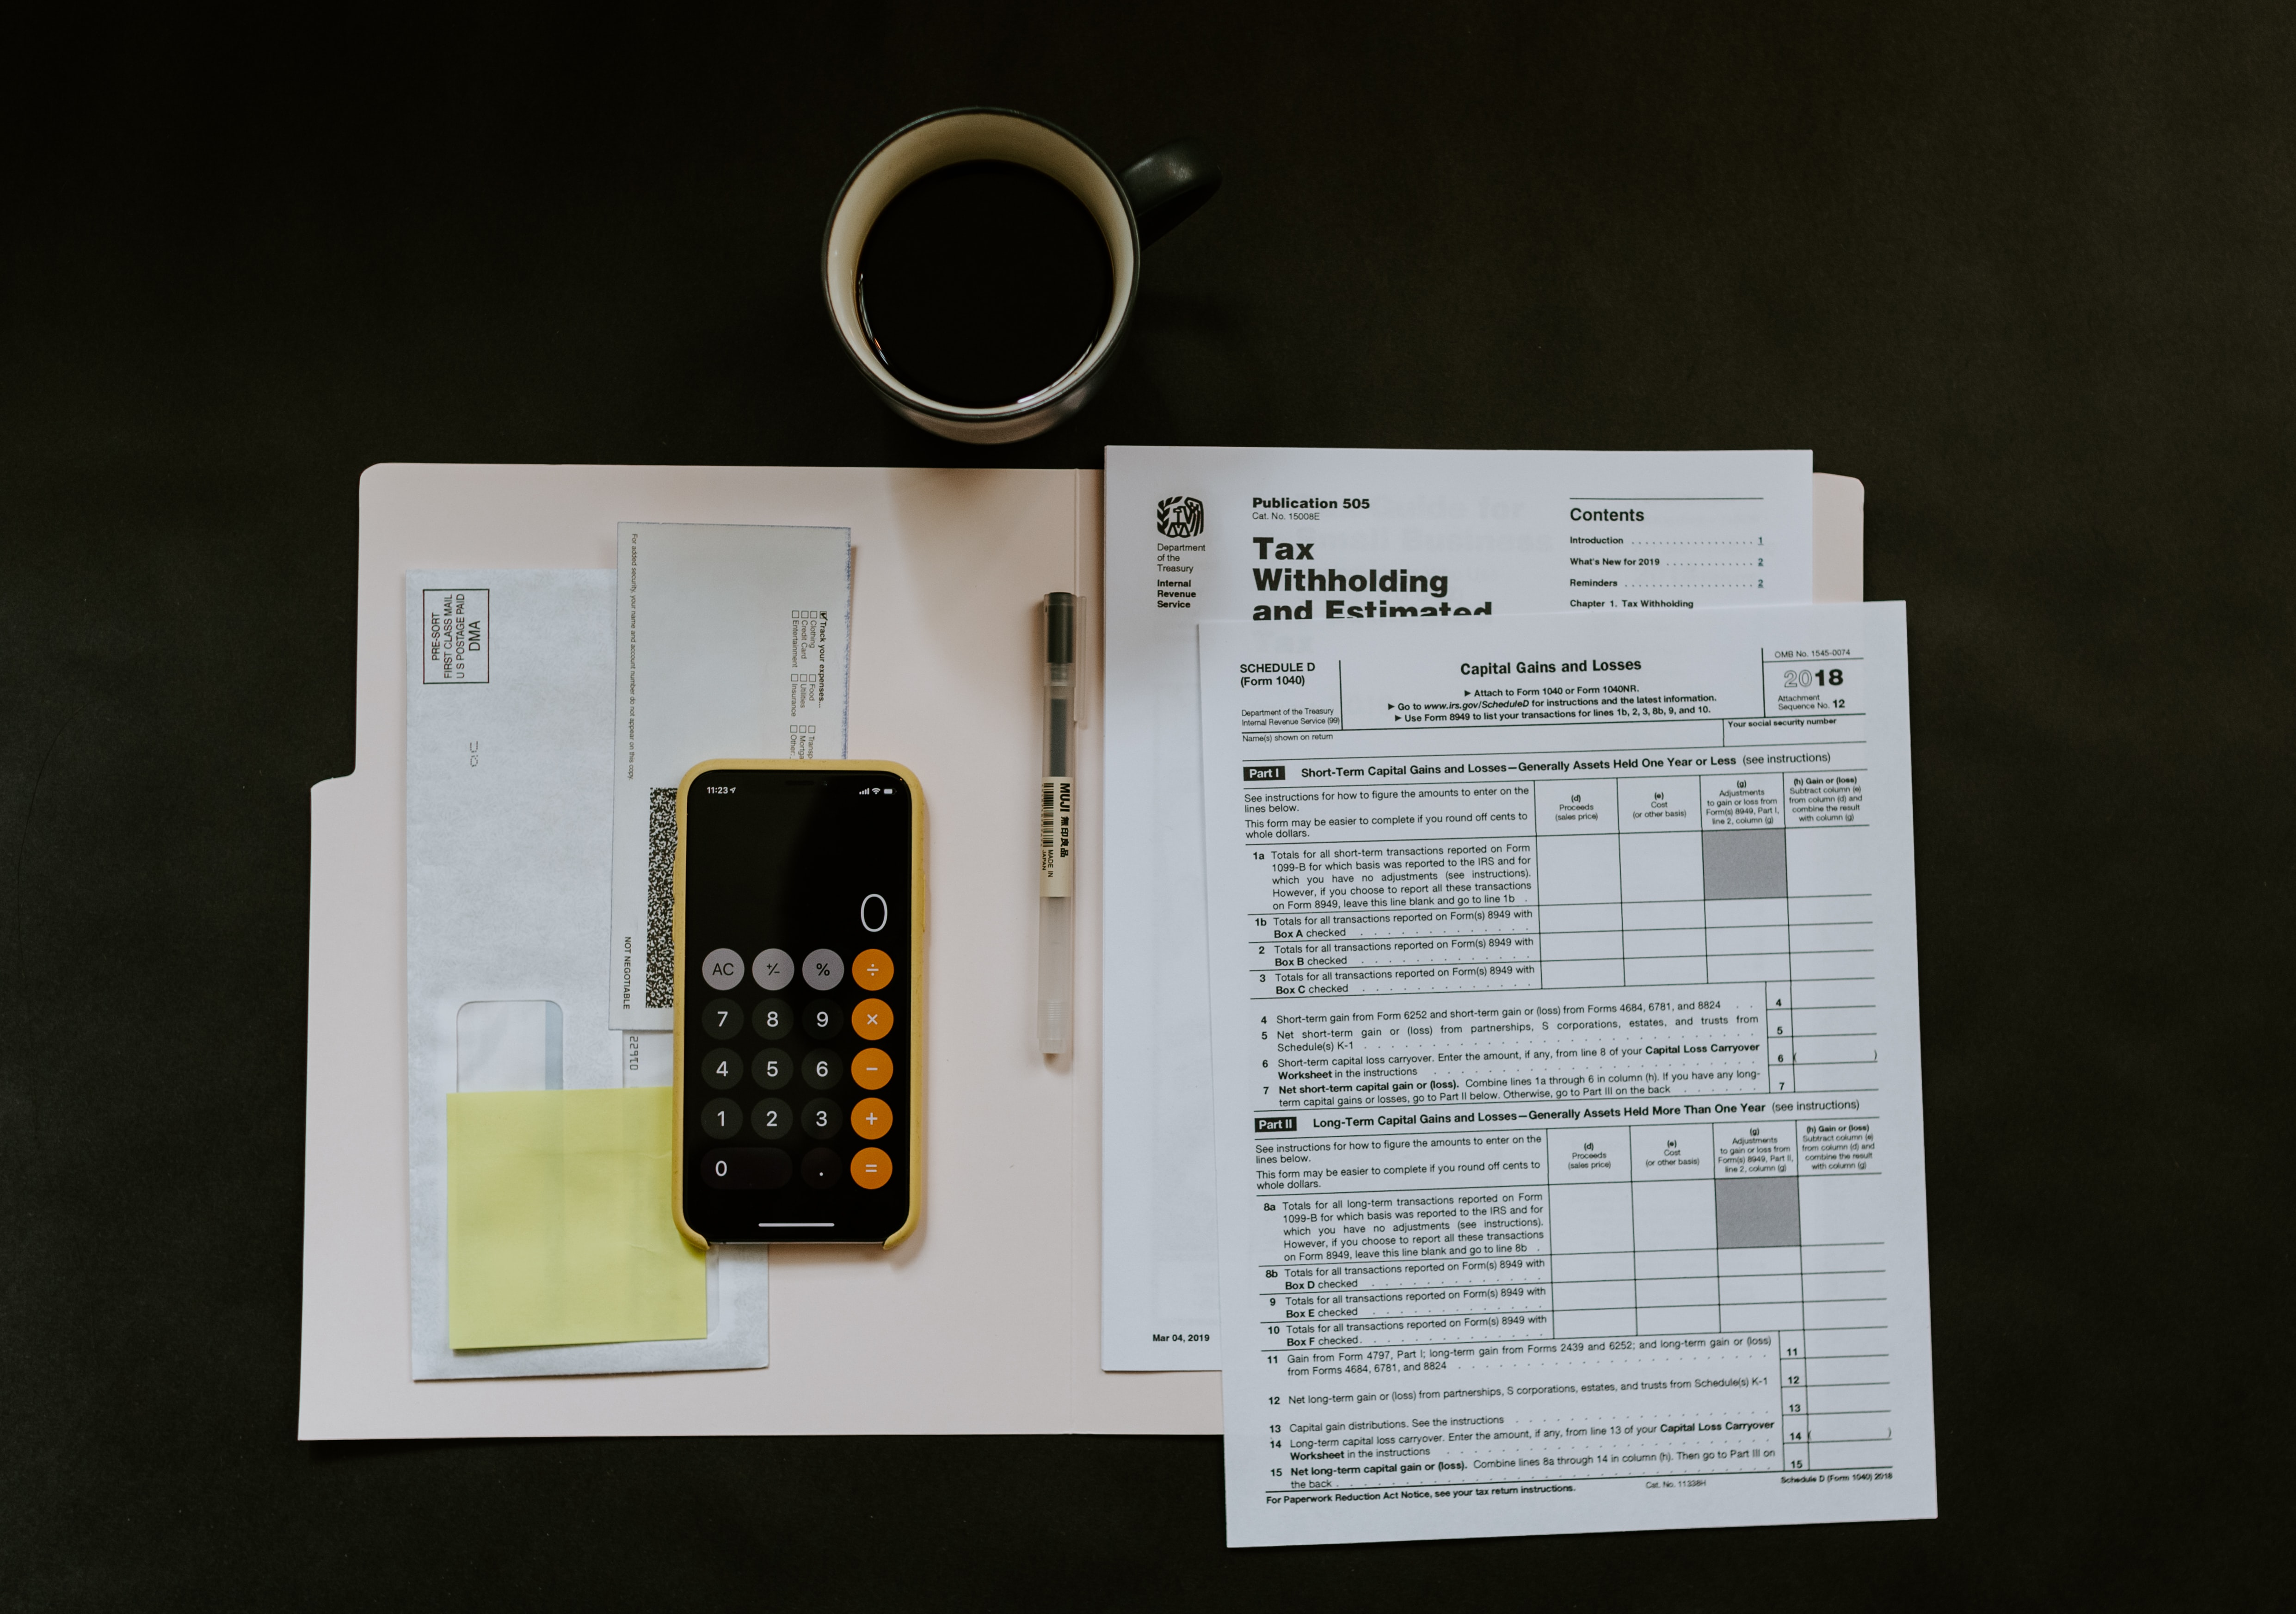 Calculator, tax return forms, pen, envelopes, yellow sticky note and roll of tape